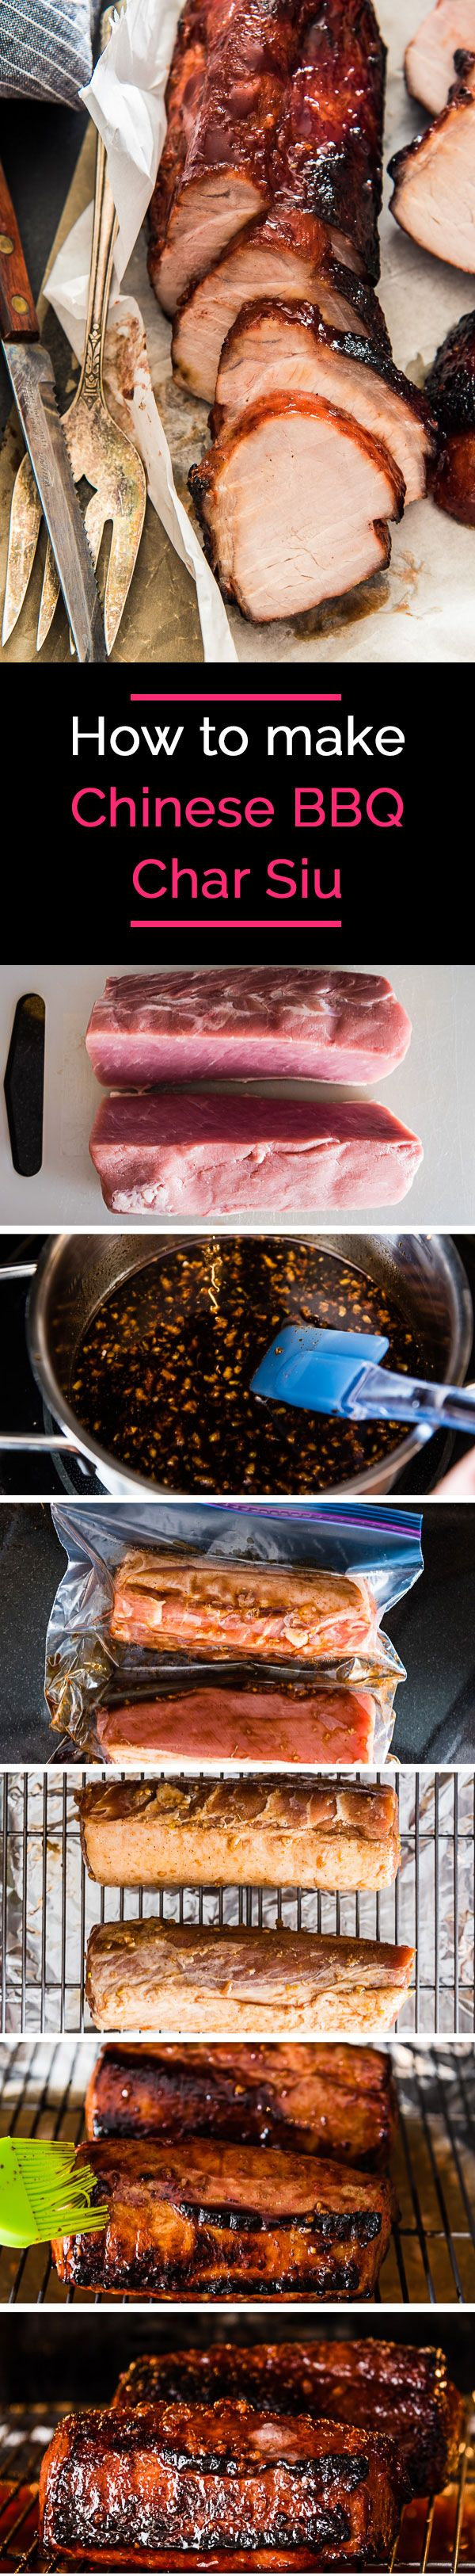 Chinese BBQ Char Siu - The perfect main dish to serve at a party. It's also a great staple to have in your fridge because it's so versatile and can be used in a variety of other dishes. | omnivorescookbook.com